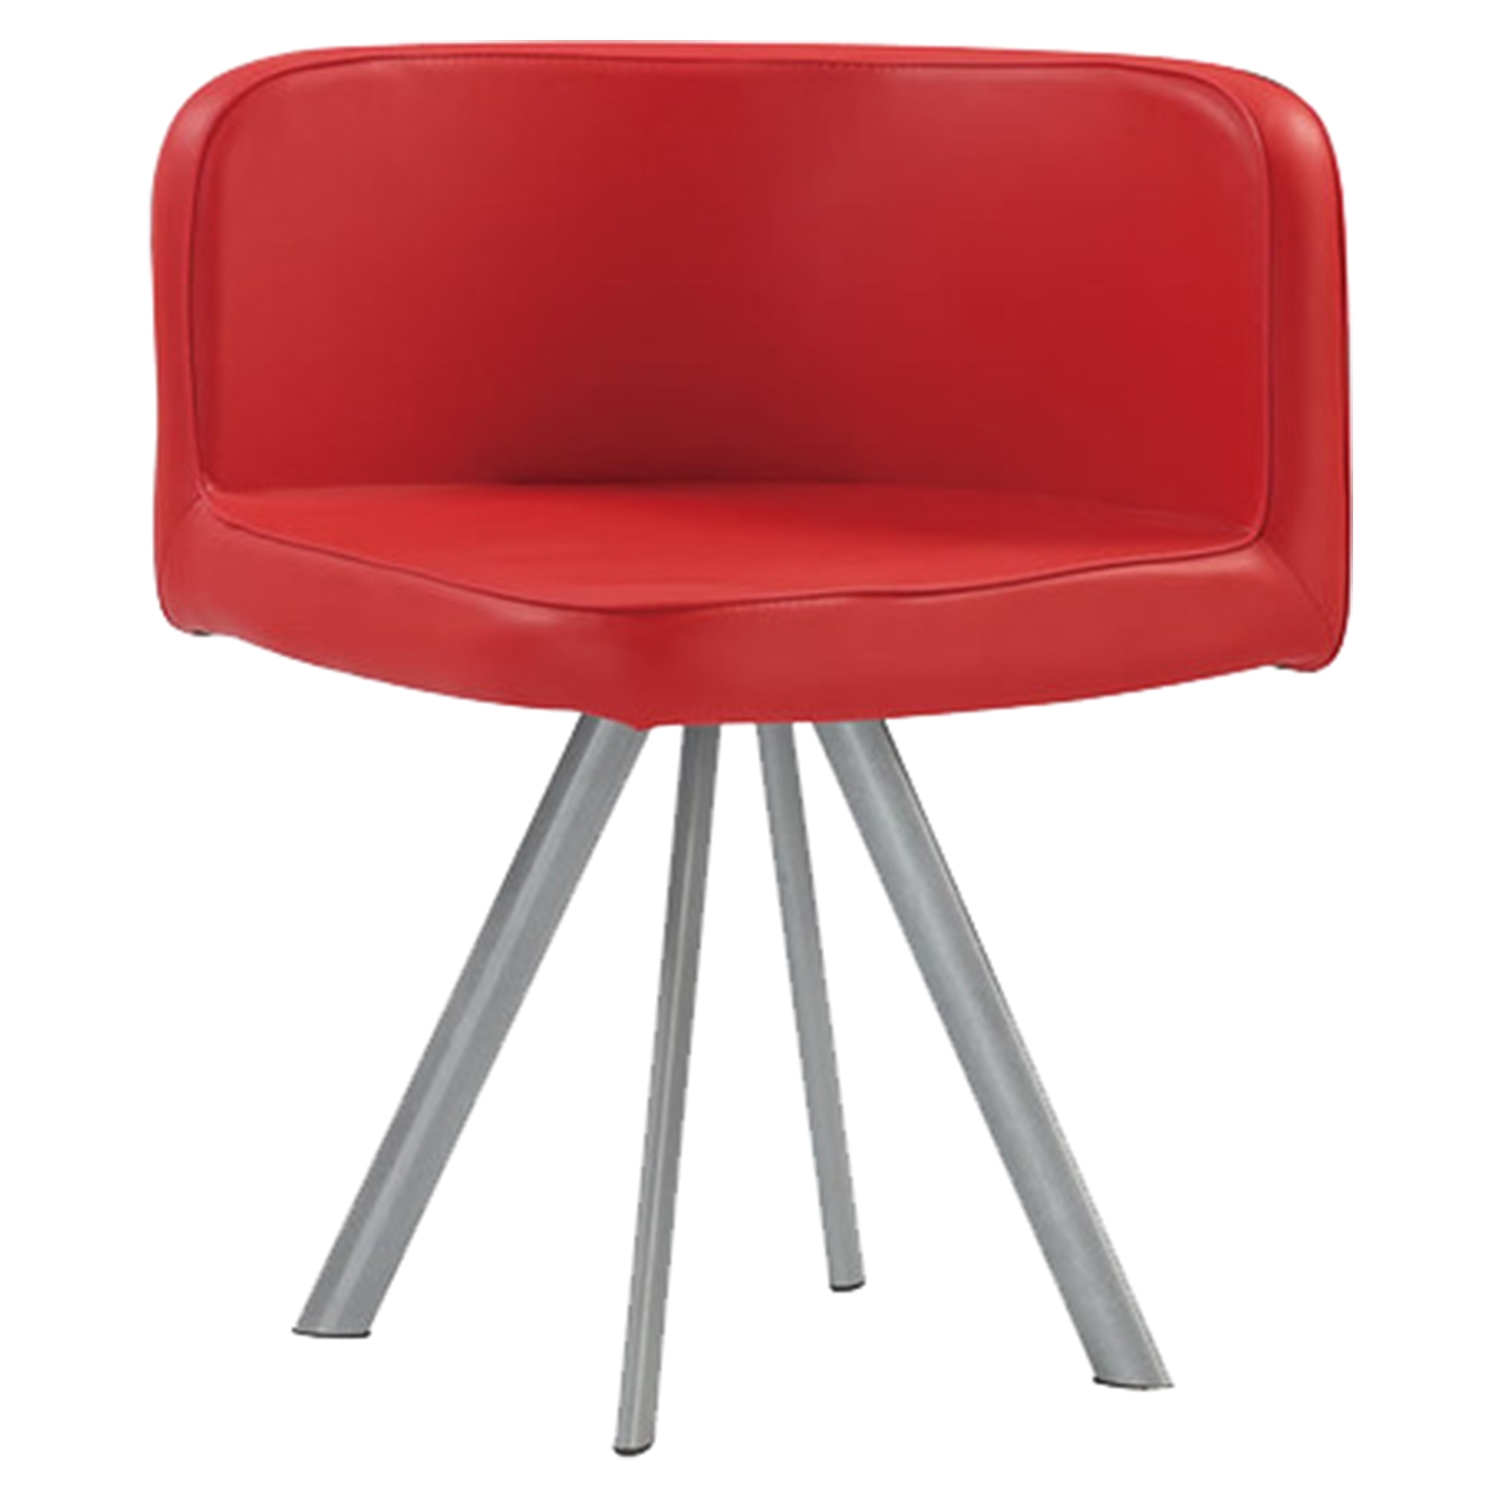 Emma Dining Chair - Red (Set of 2) - GLO-D536-1-RED-DC-M